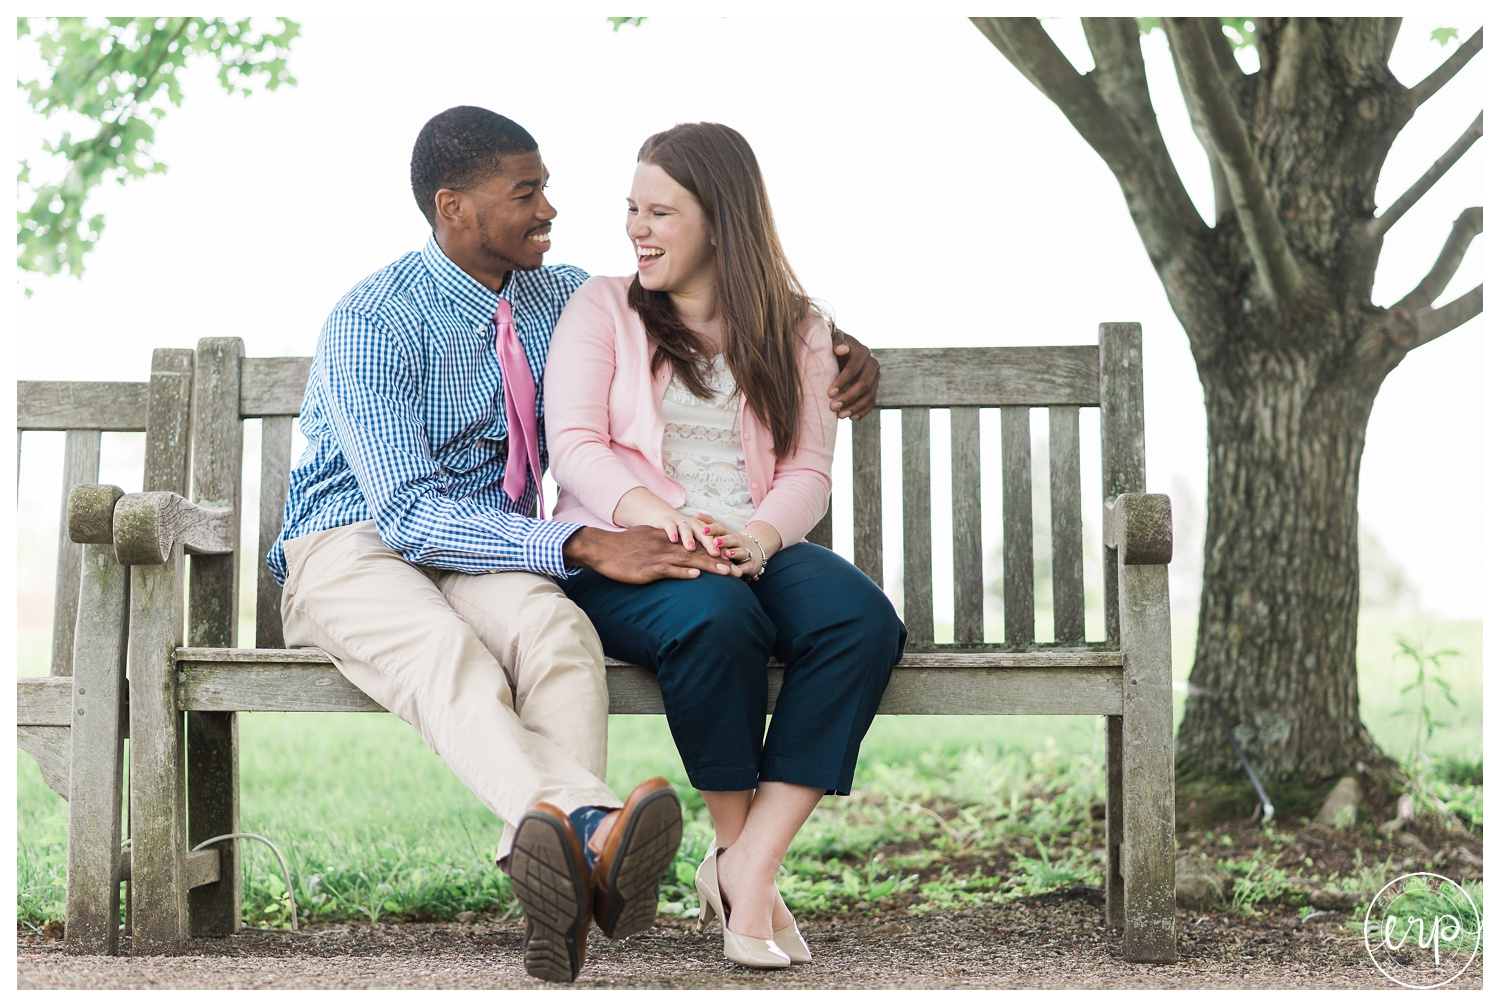 Couple sitting on a bench and laughing together.